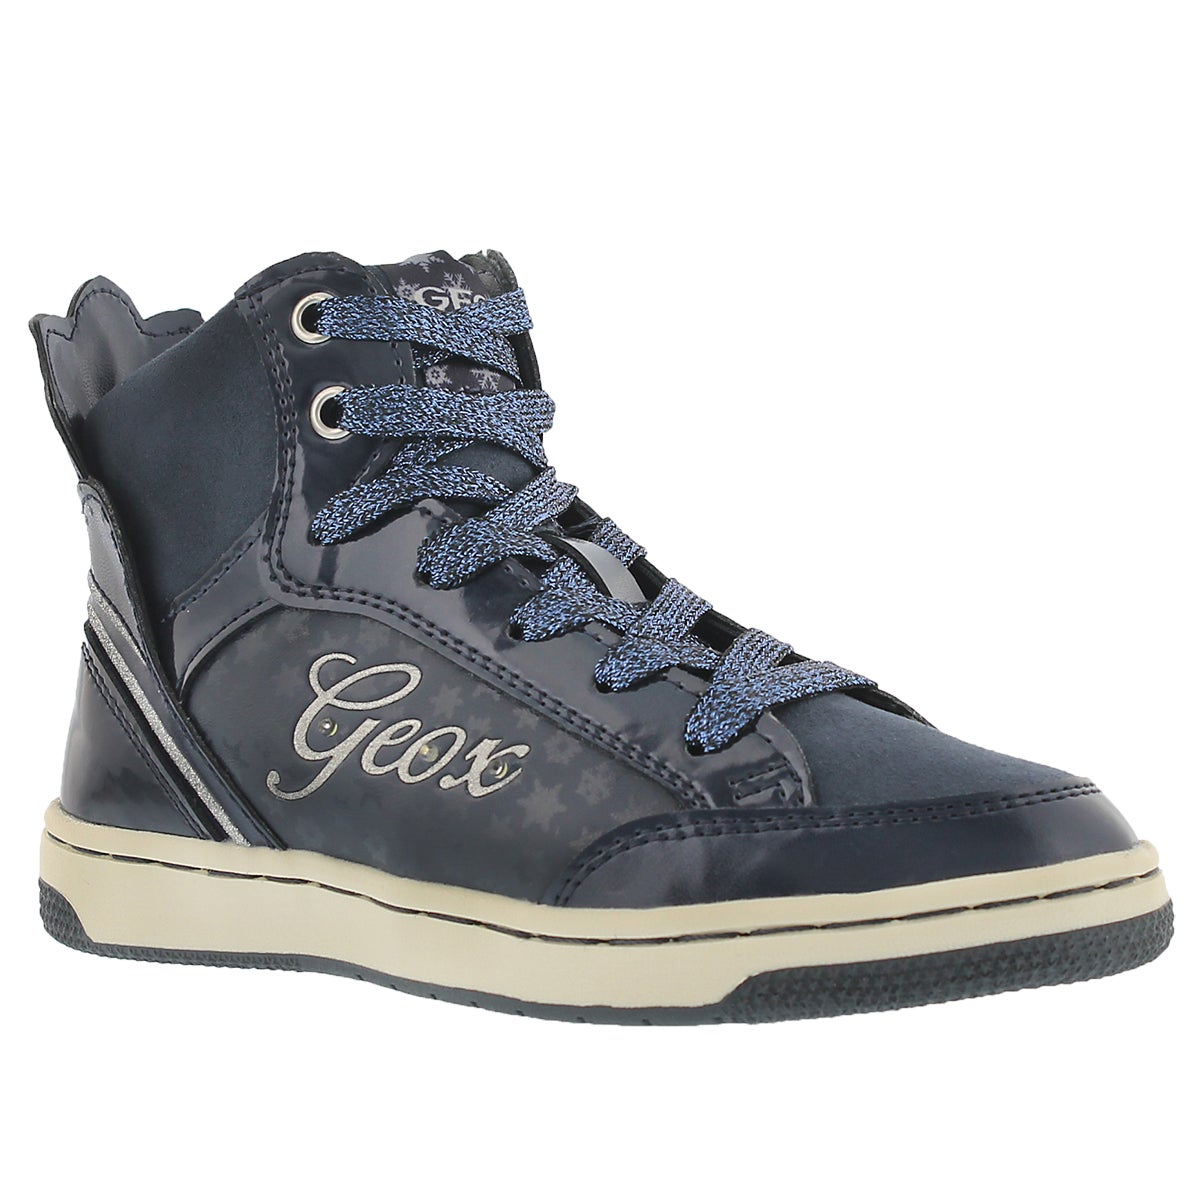 Grls Creamy navy high top sneaker